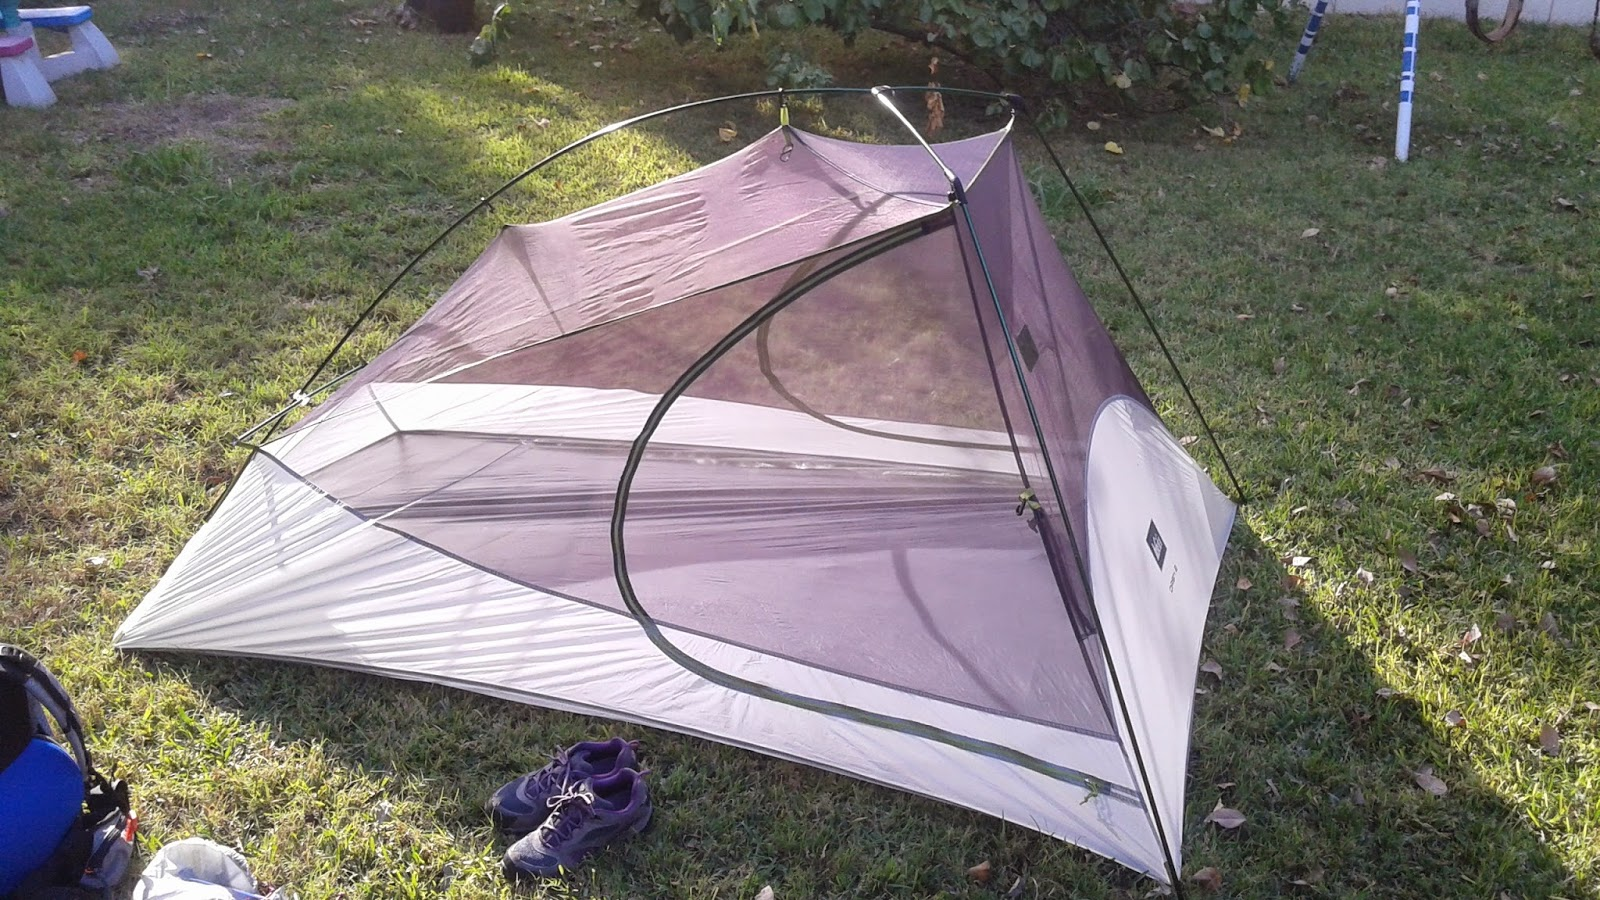 REI Dash 2 Tent. & Packman - Raised by Raccoons: REI DASH 2 TENT REVIEW u0026 MODIFICATION